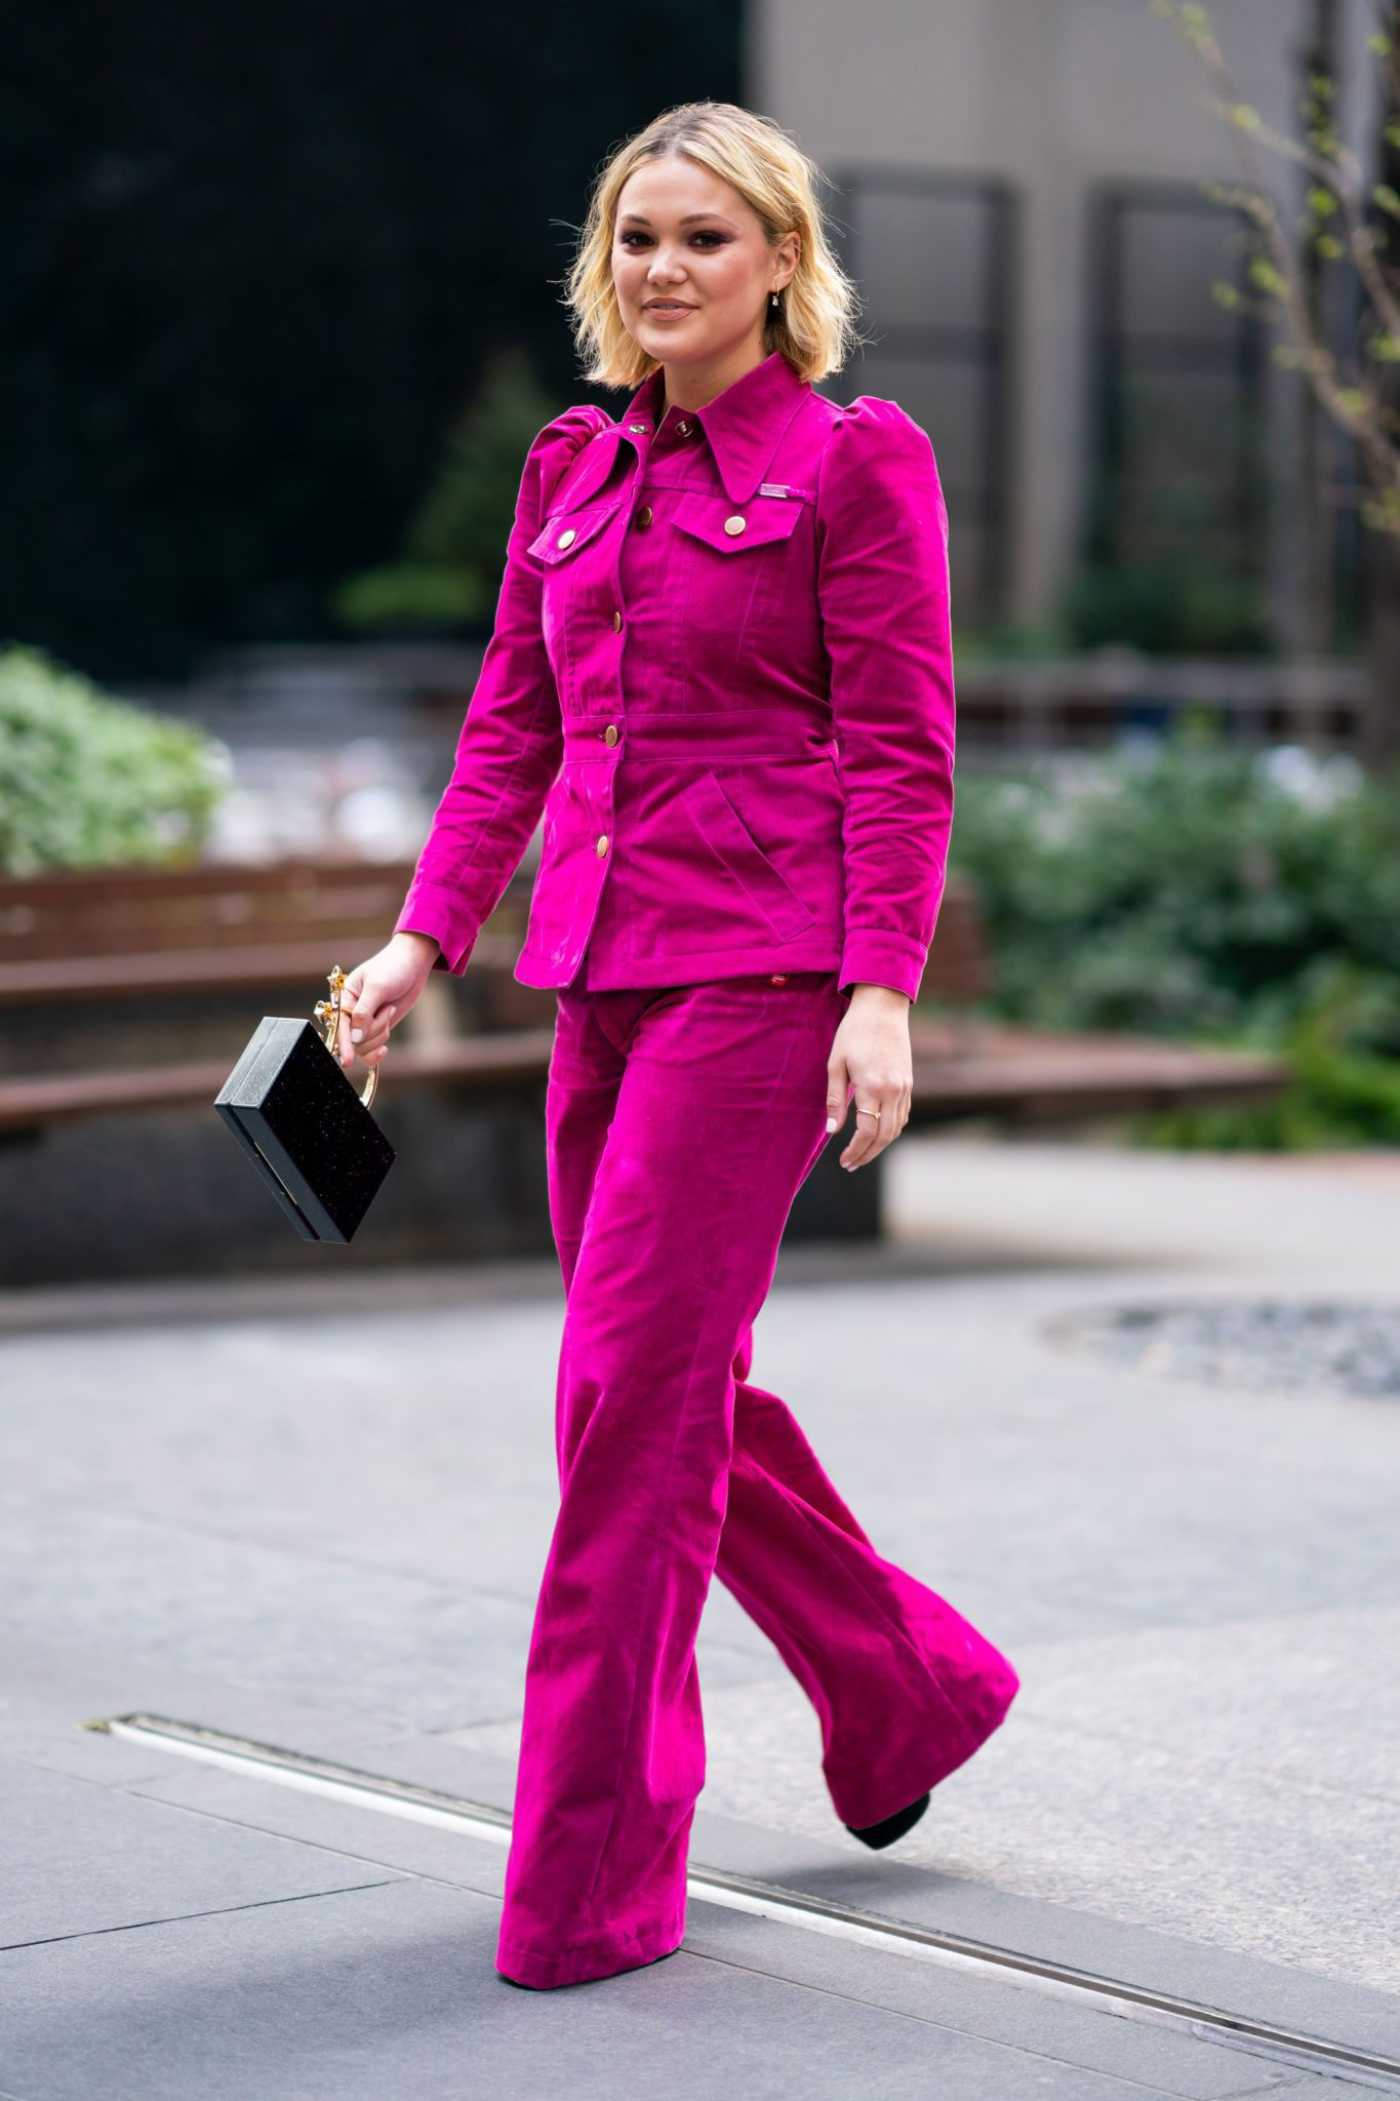 Olivia Holt in a Pink Suit Was Seen Out in Midtown in NYC 04/02/2019